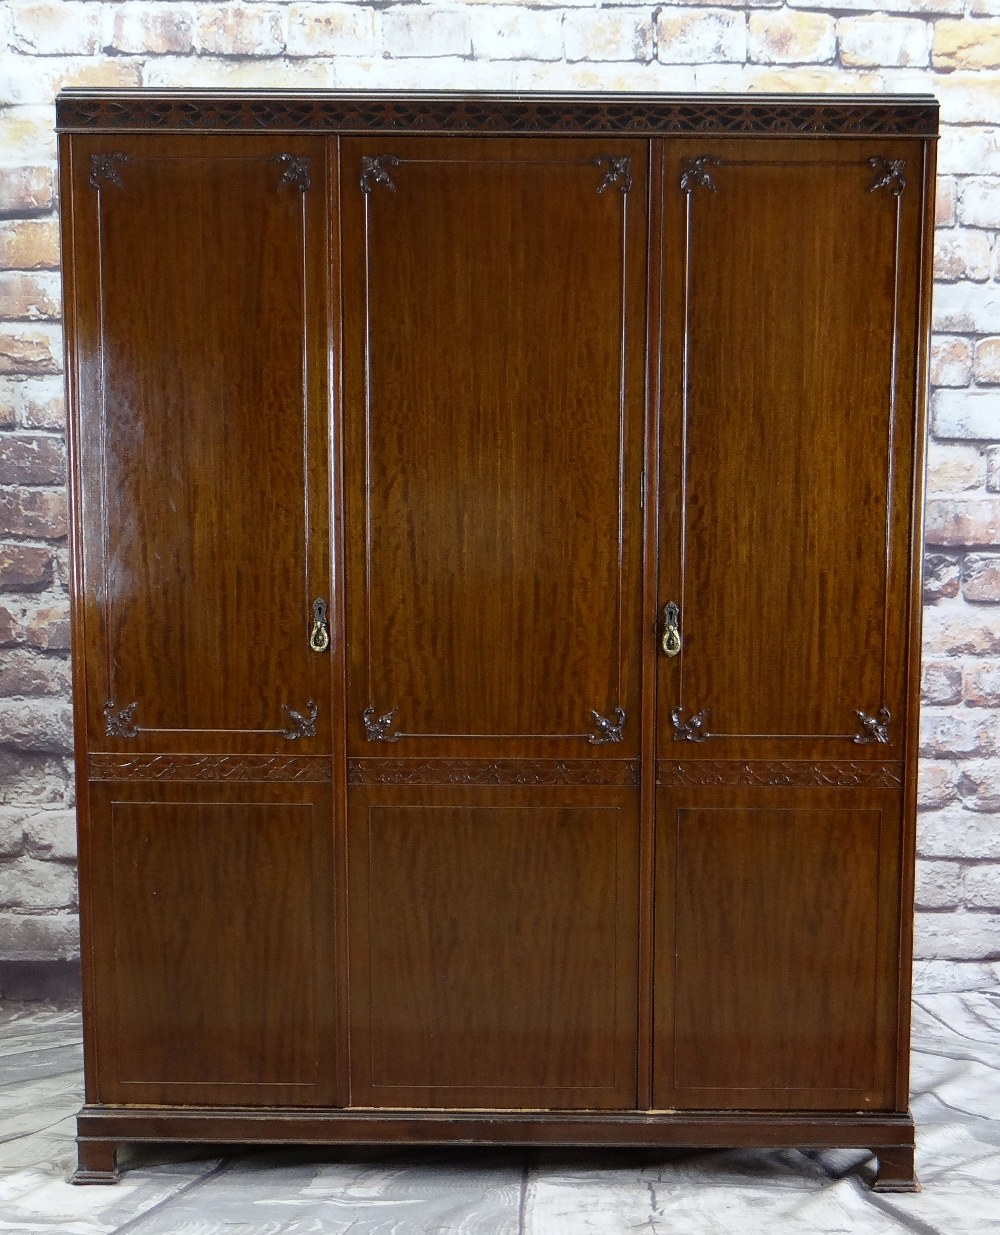 GEORGIAN CHIPPENDALE-STYLE TRIPLE MAHOGANY WARDROBE, blind fret carved frieze above panelled doors